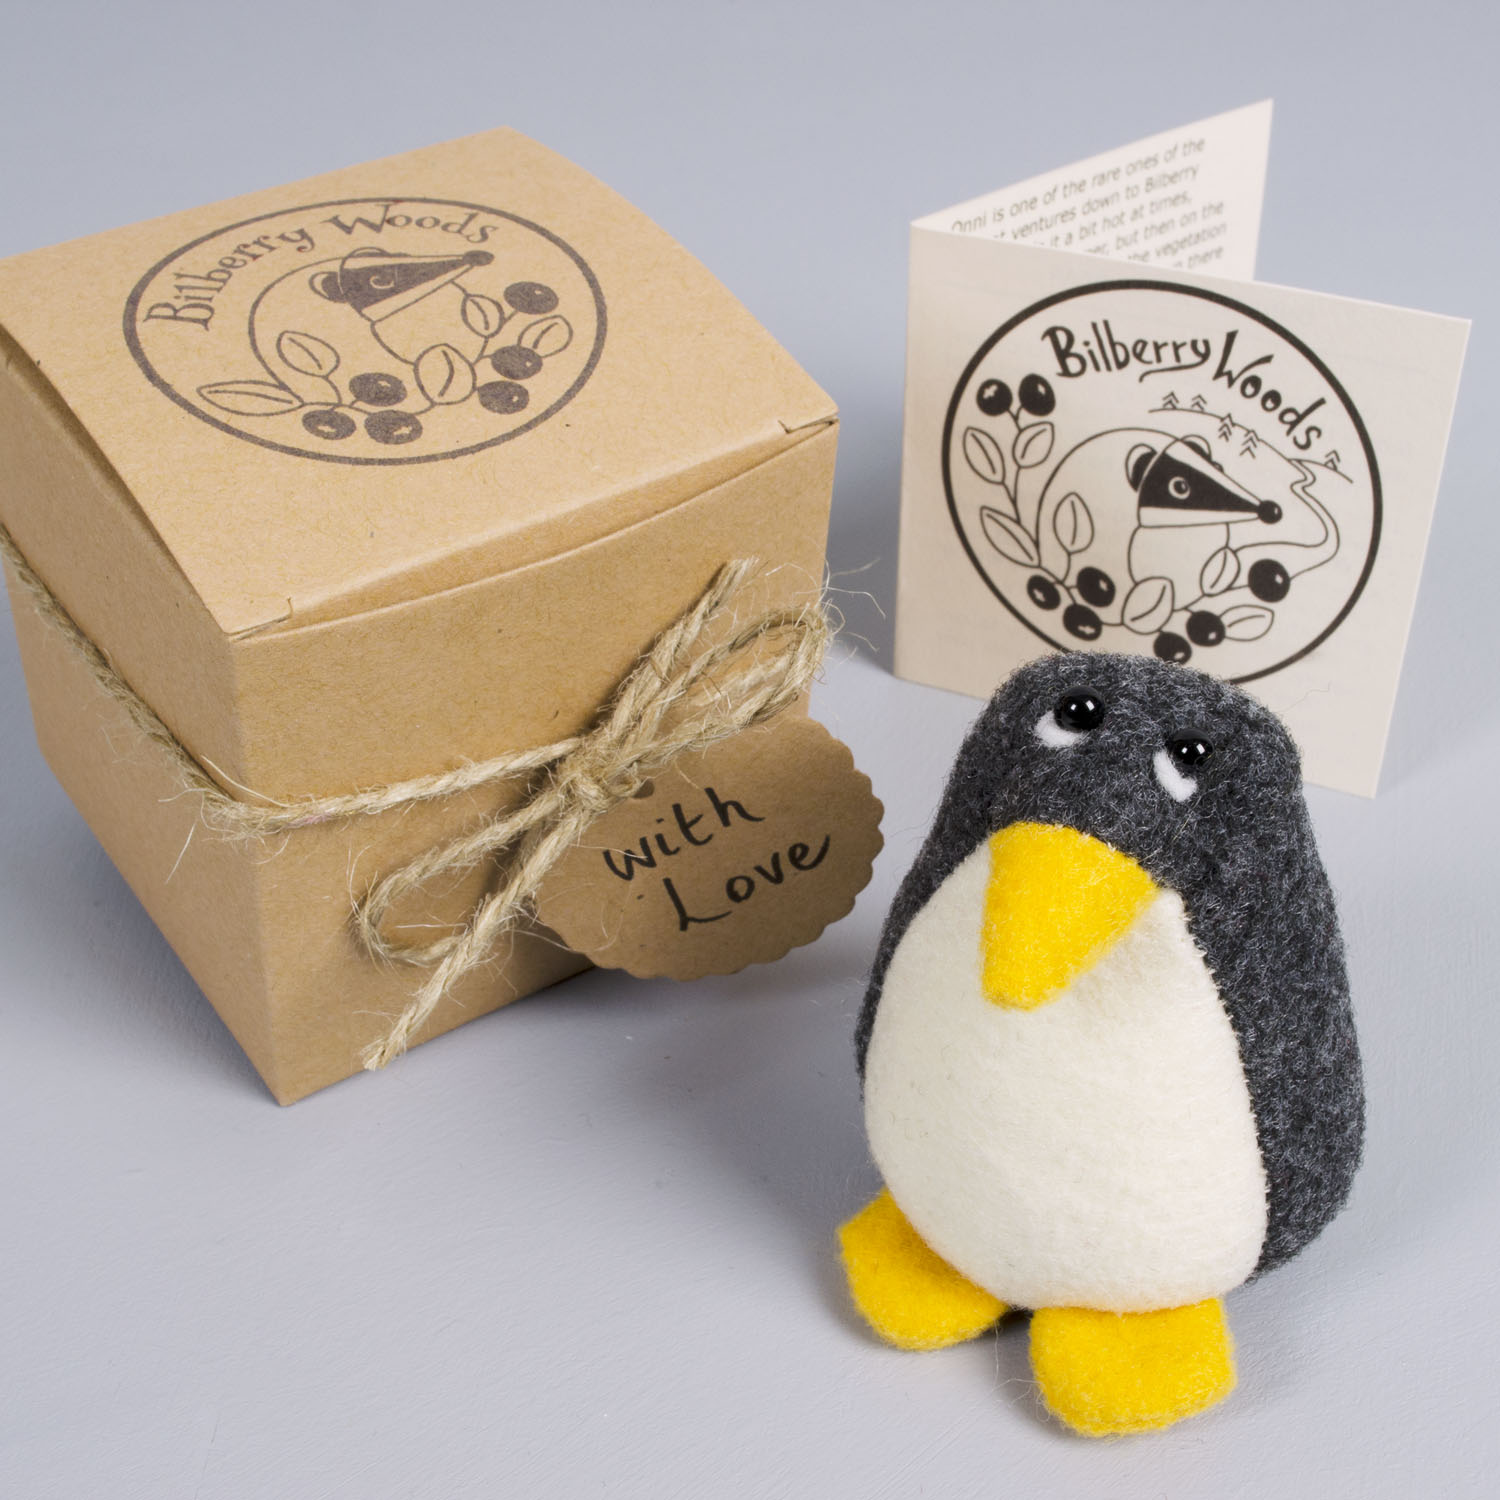 Pedro the Penguin paperweight handmade from Kunin eco-fi felt | by Bilberry Woods.jpg